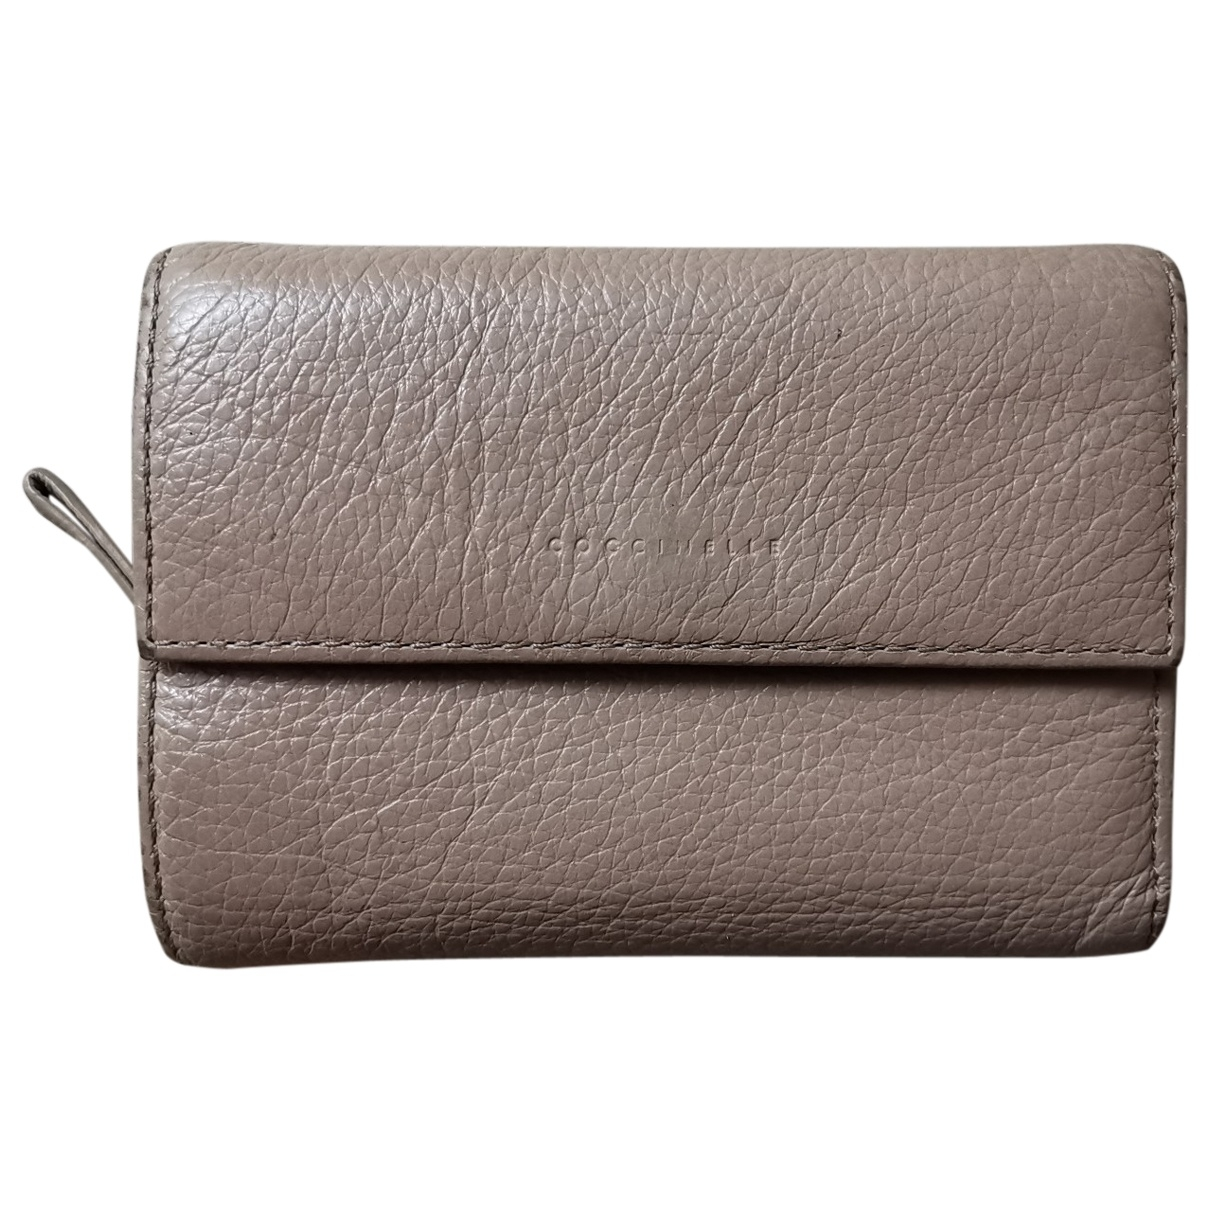 Coccinelle \N Pink Leather wallet for Women \N